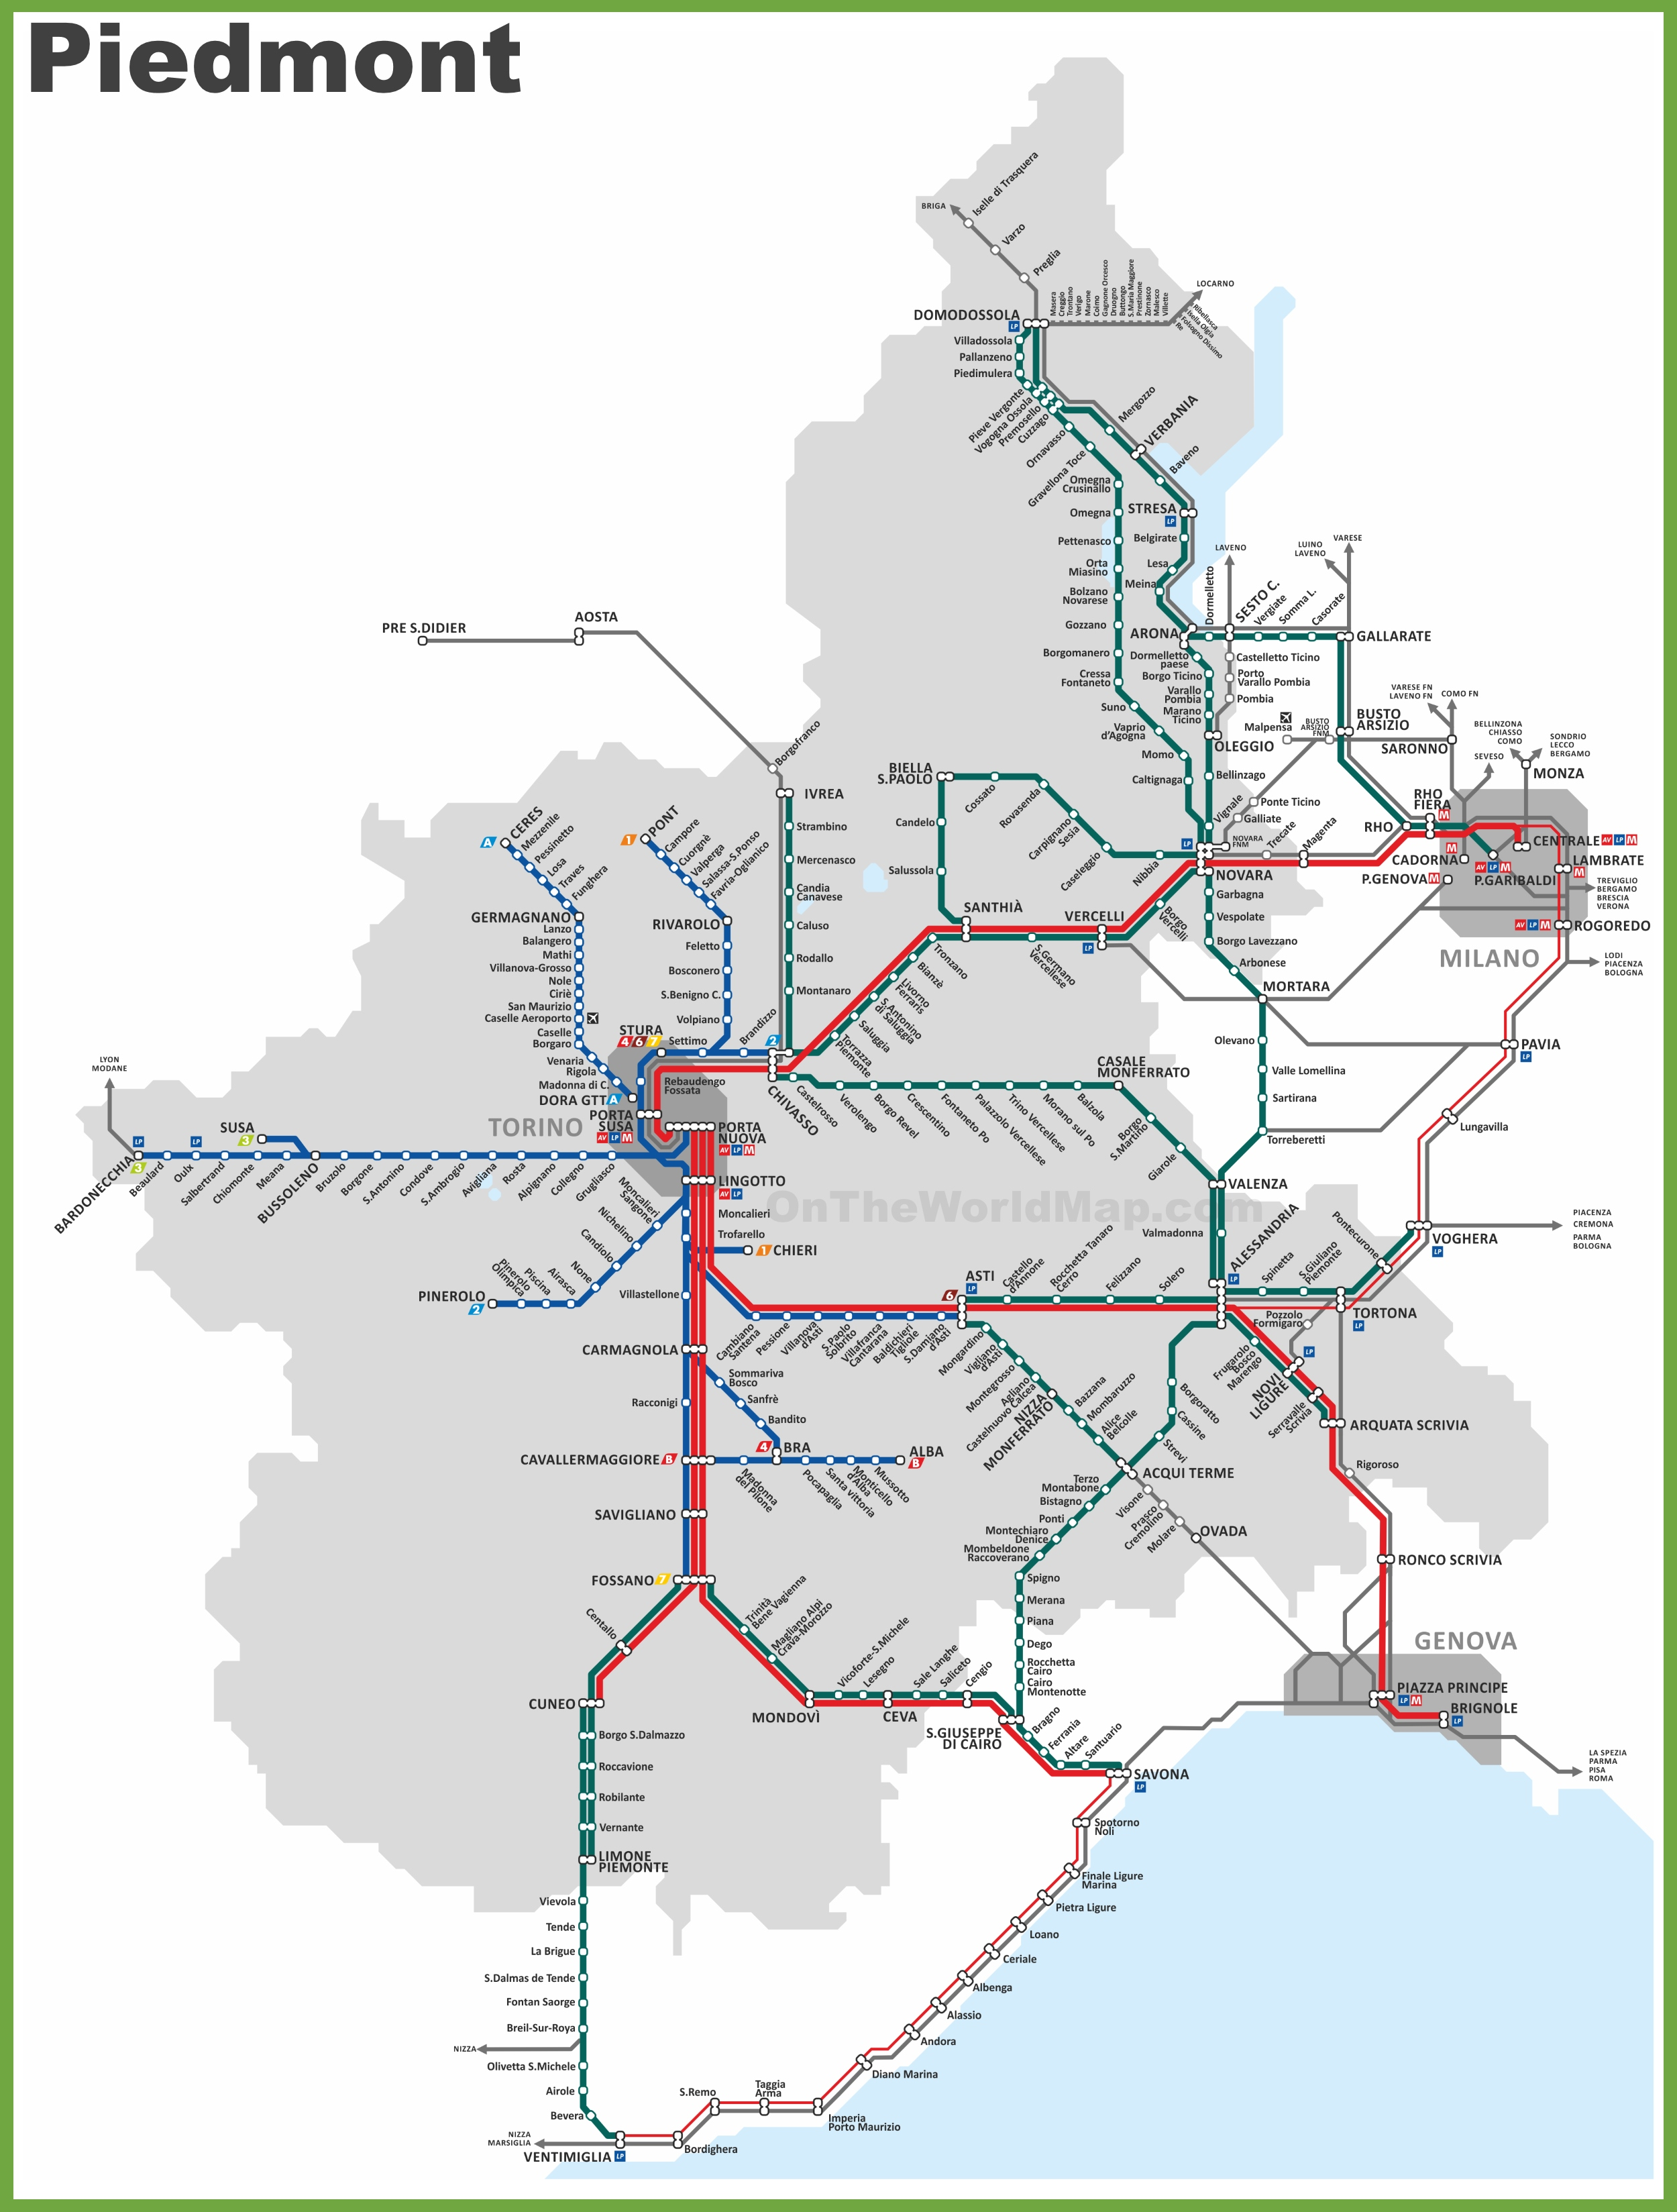 Piedmont railway map sciox Image collections